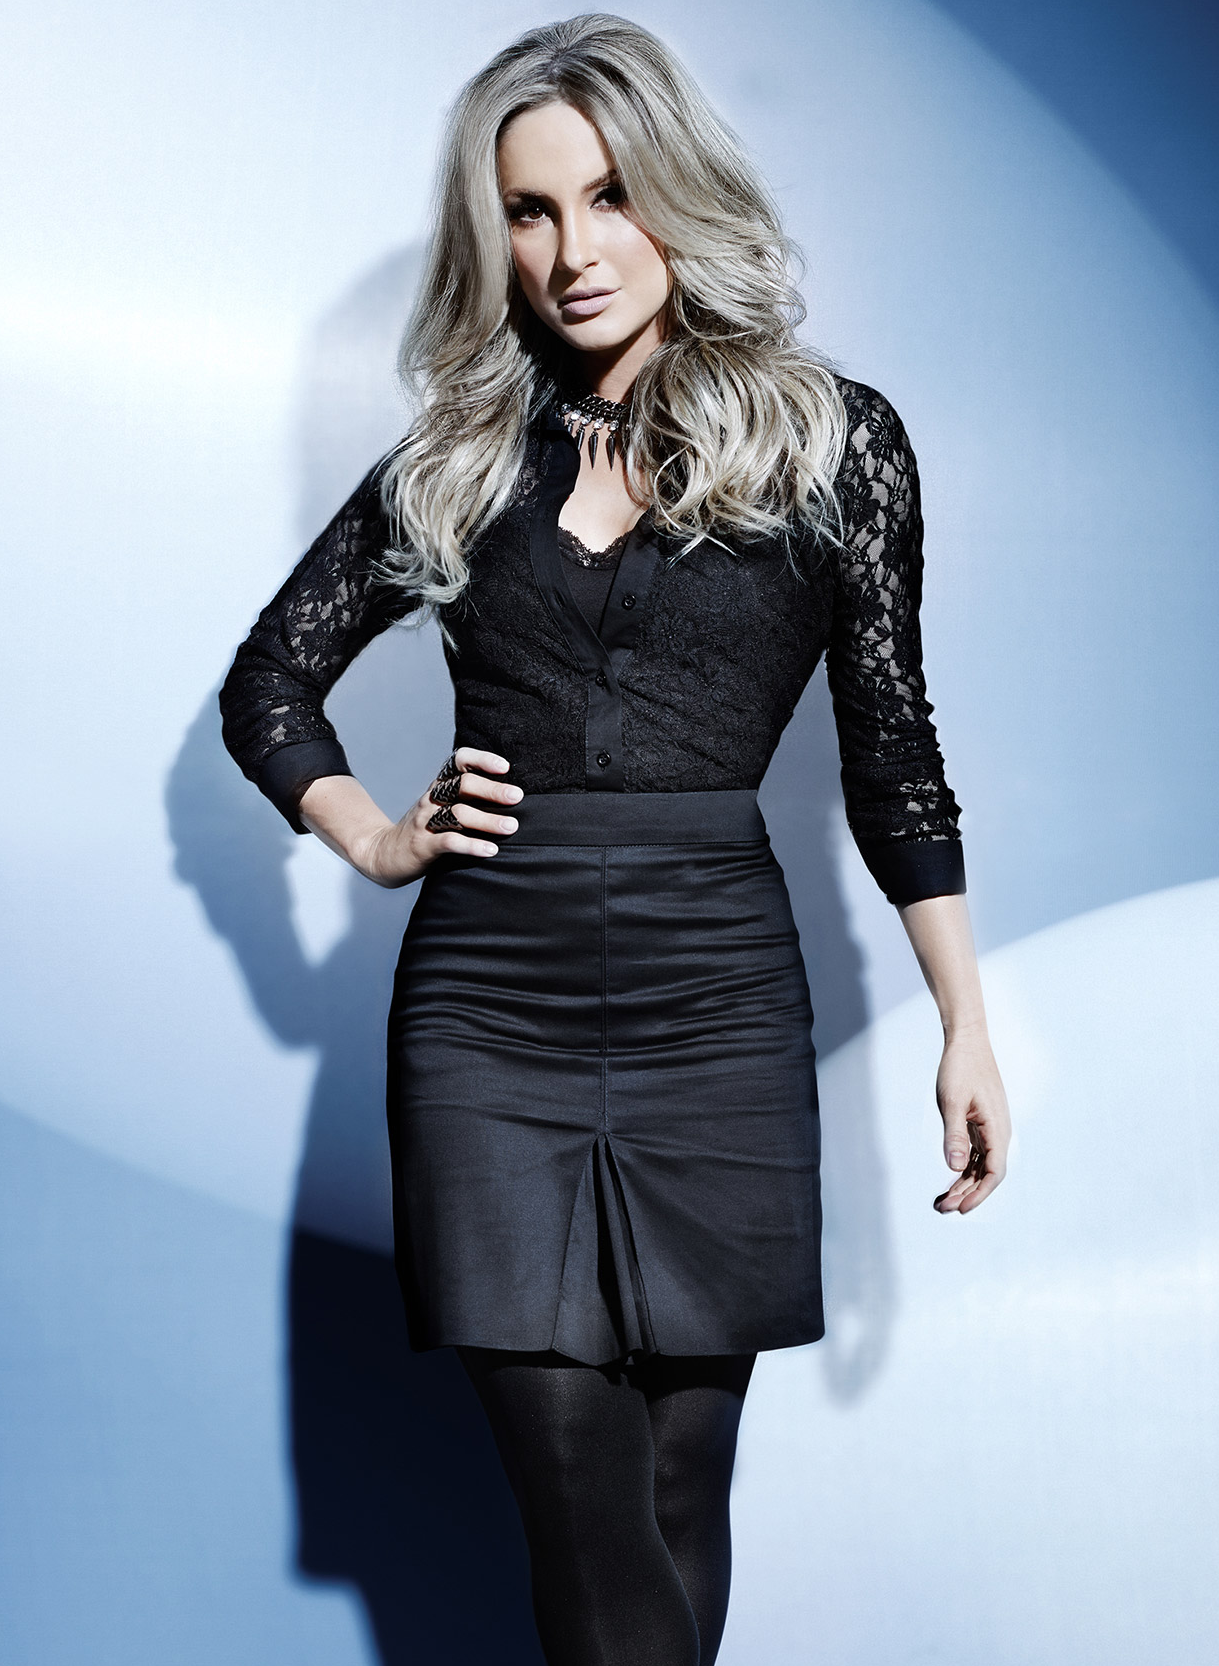 Claudia Leitte Pictures | MetroLyrics